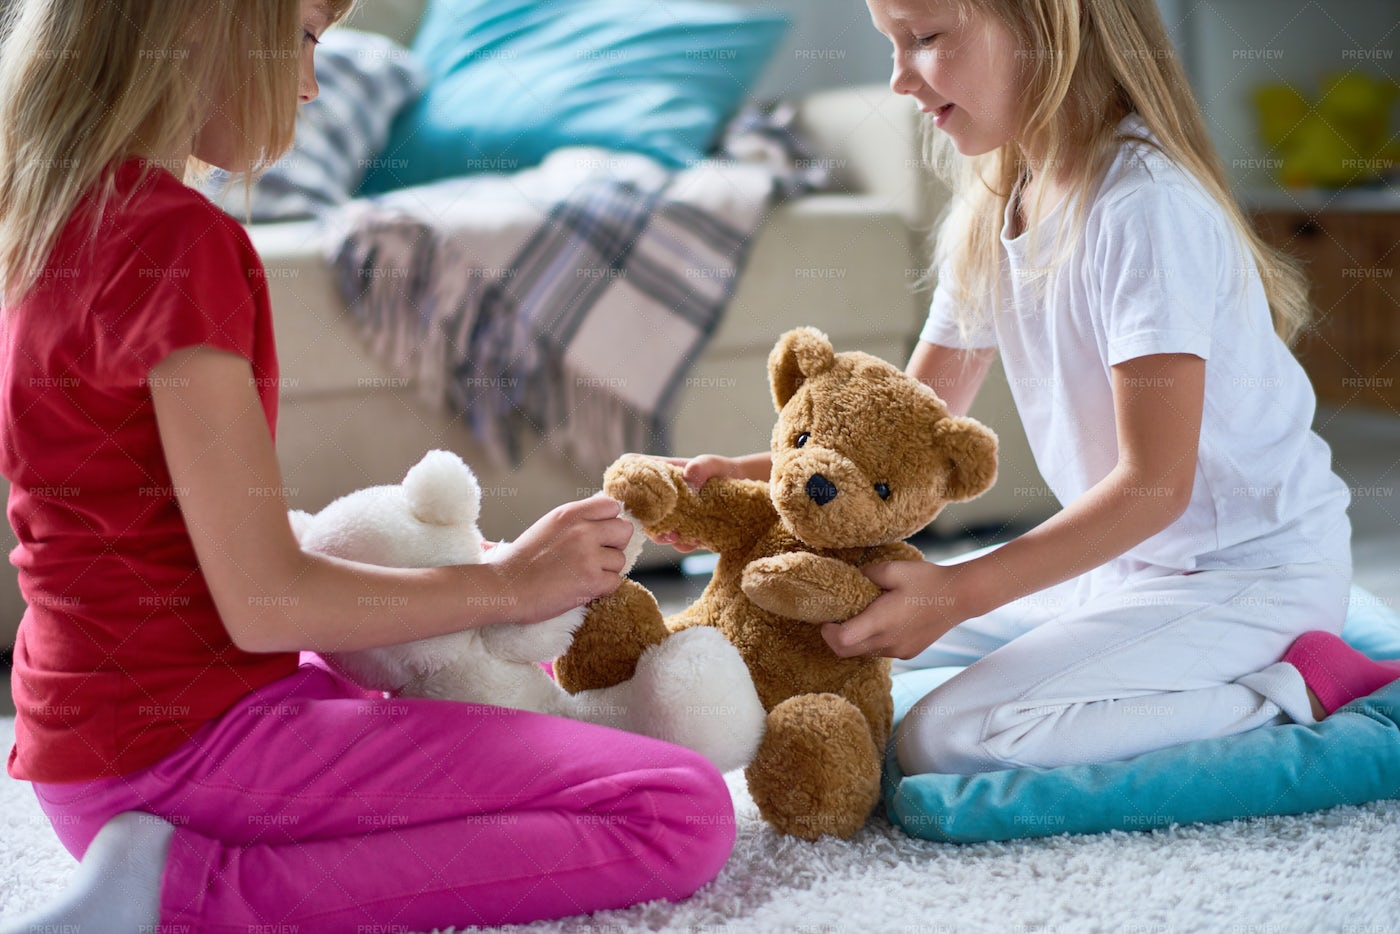 Little Sisters With Plush Teddy...: Stock Photos